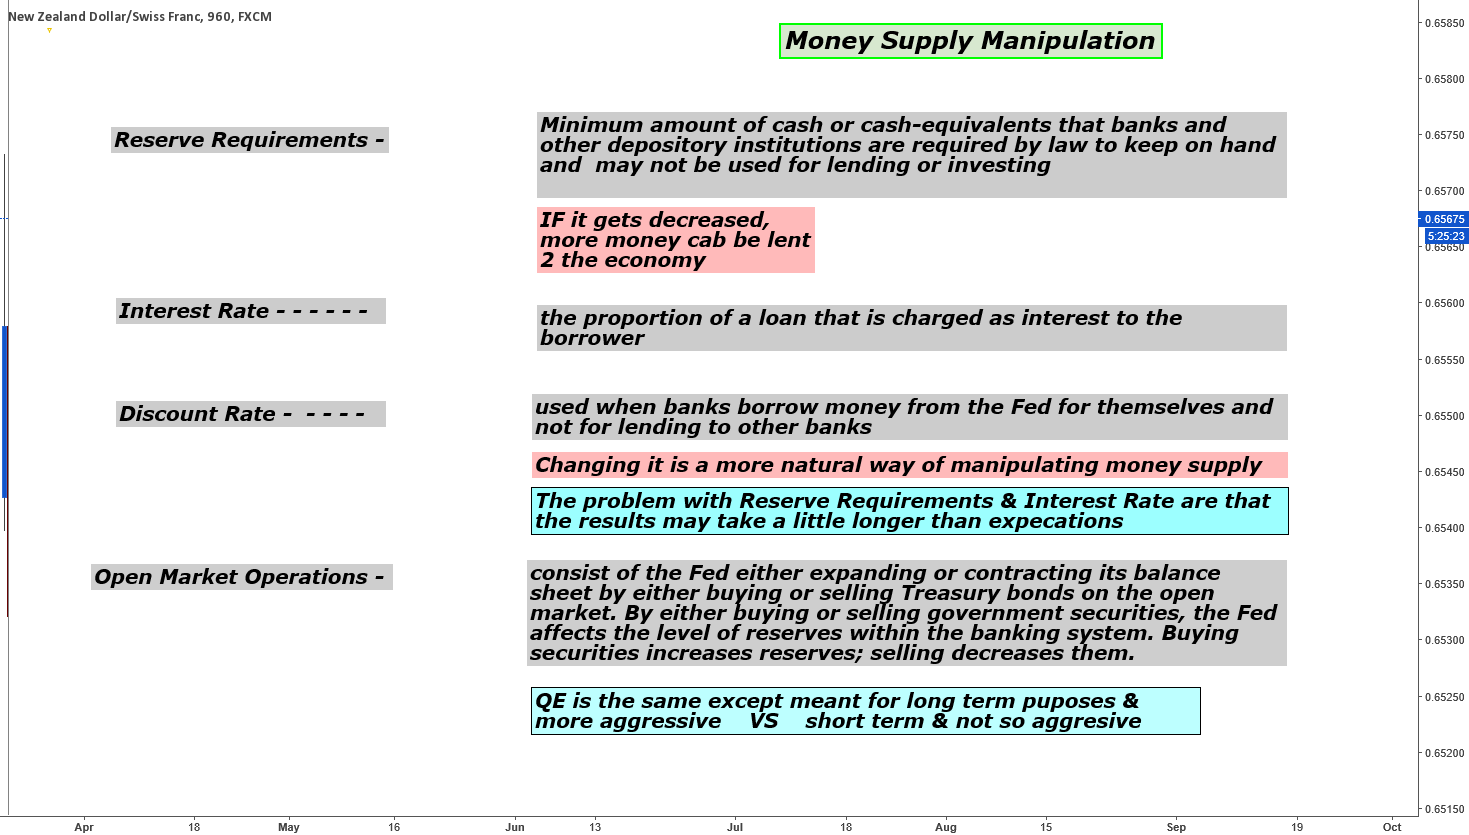 Money Supply Manipulation